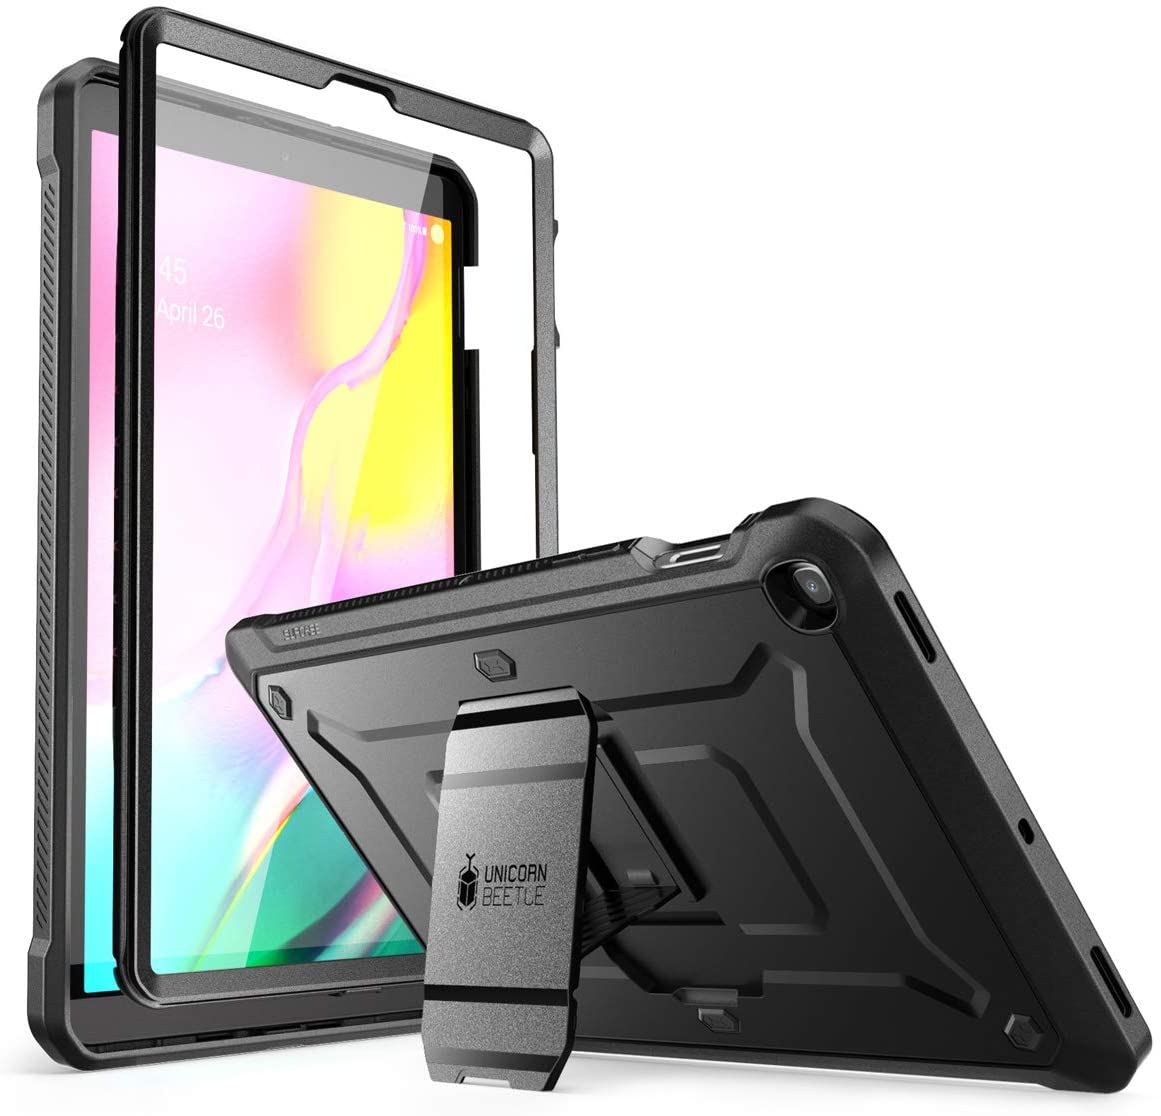 "SUPCASE Unicorn Beetle Pro Series Case for Galaxy Tab S5e Case, Full-Body Rugged Protective Case with Built-in Screen Protector for Samsung Galaxy Tab S5e 10.5"" 2019 Model (SM-T720/T725) (Black)"